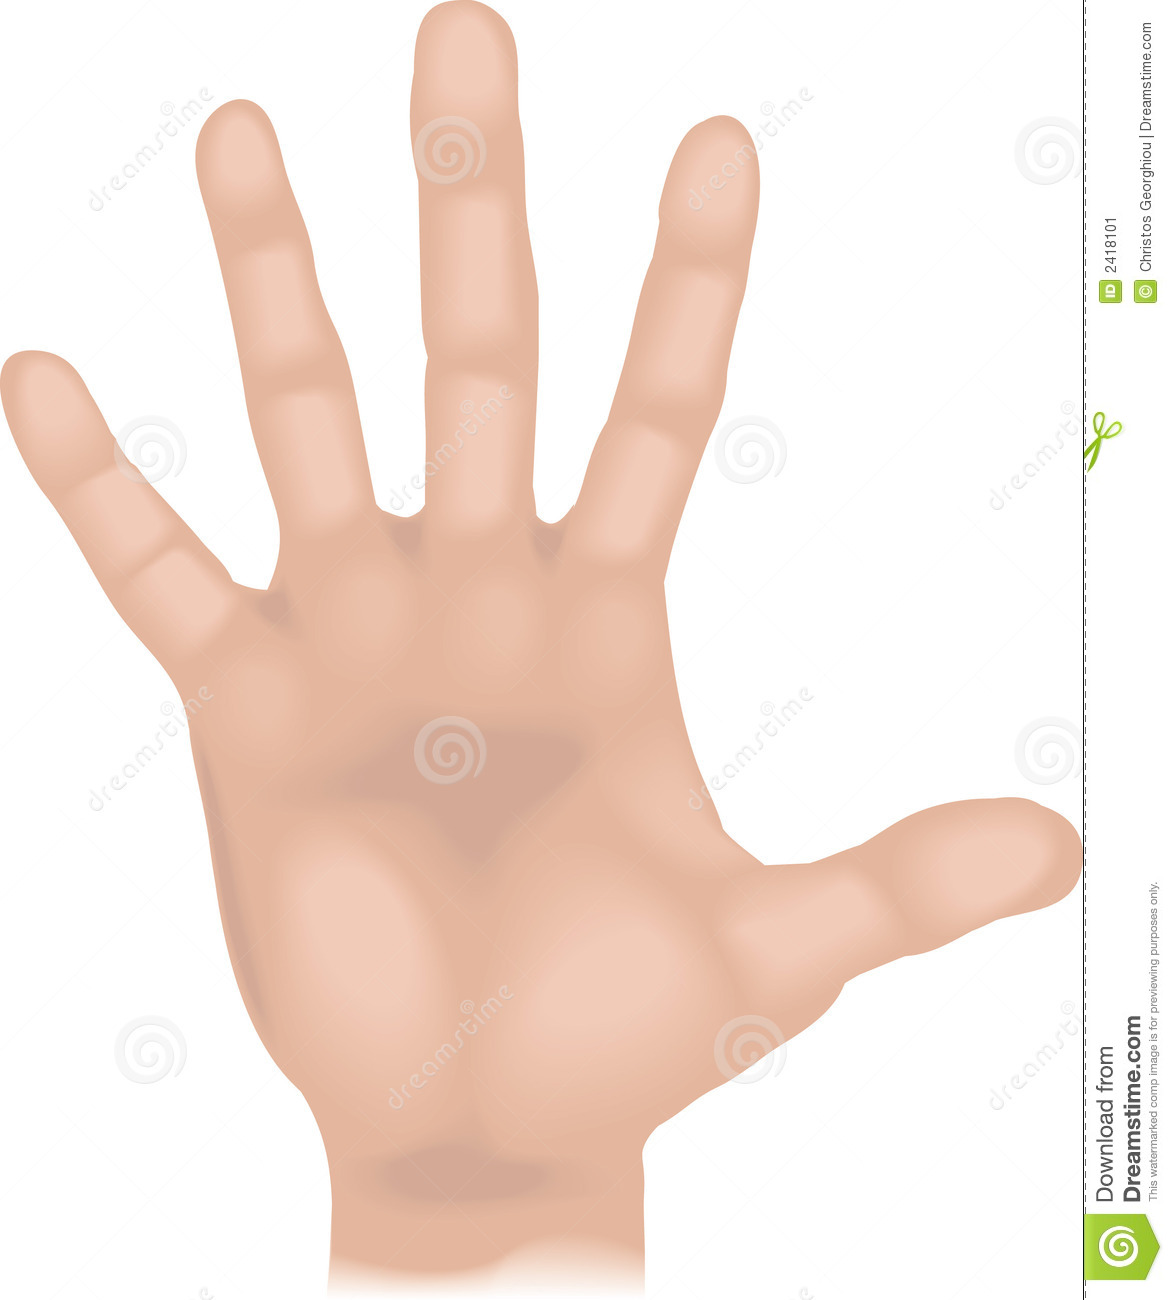 Body parts hand stock vector. Illustration of vector ...